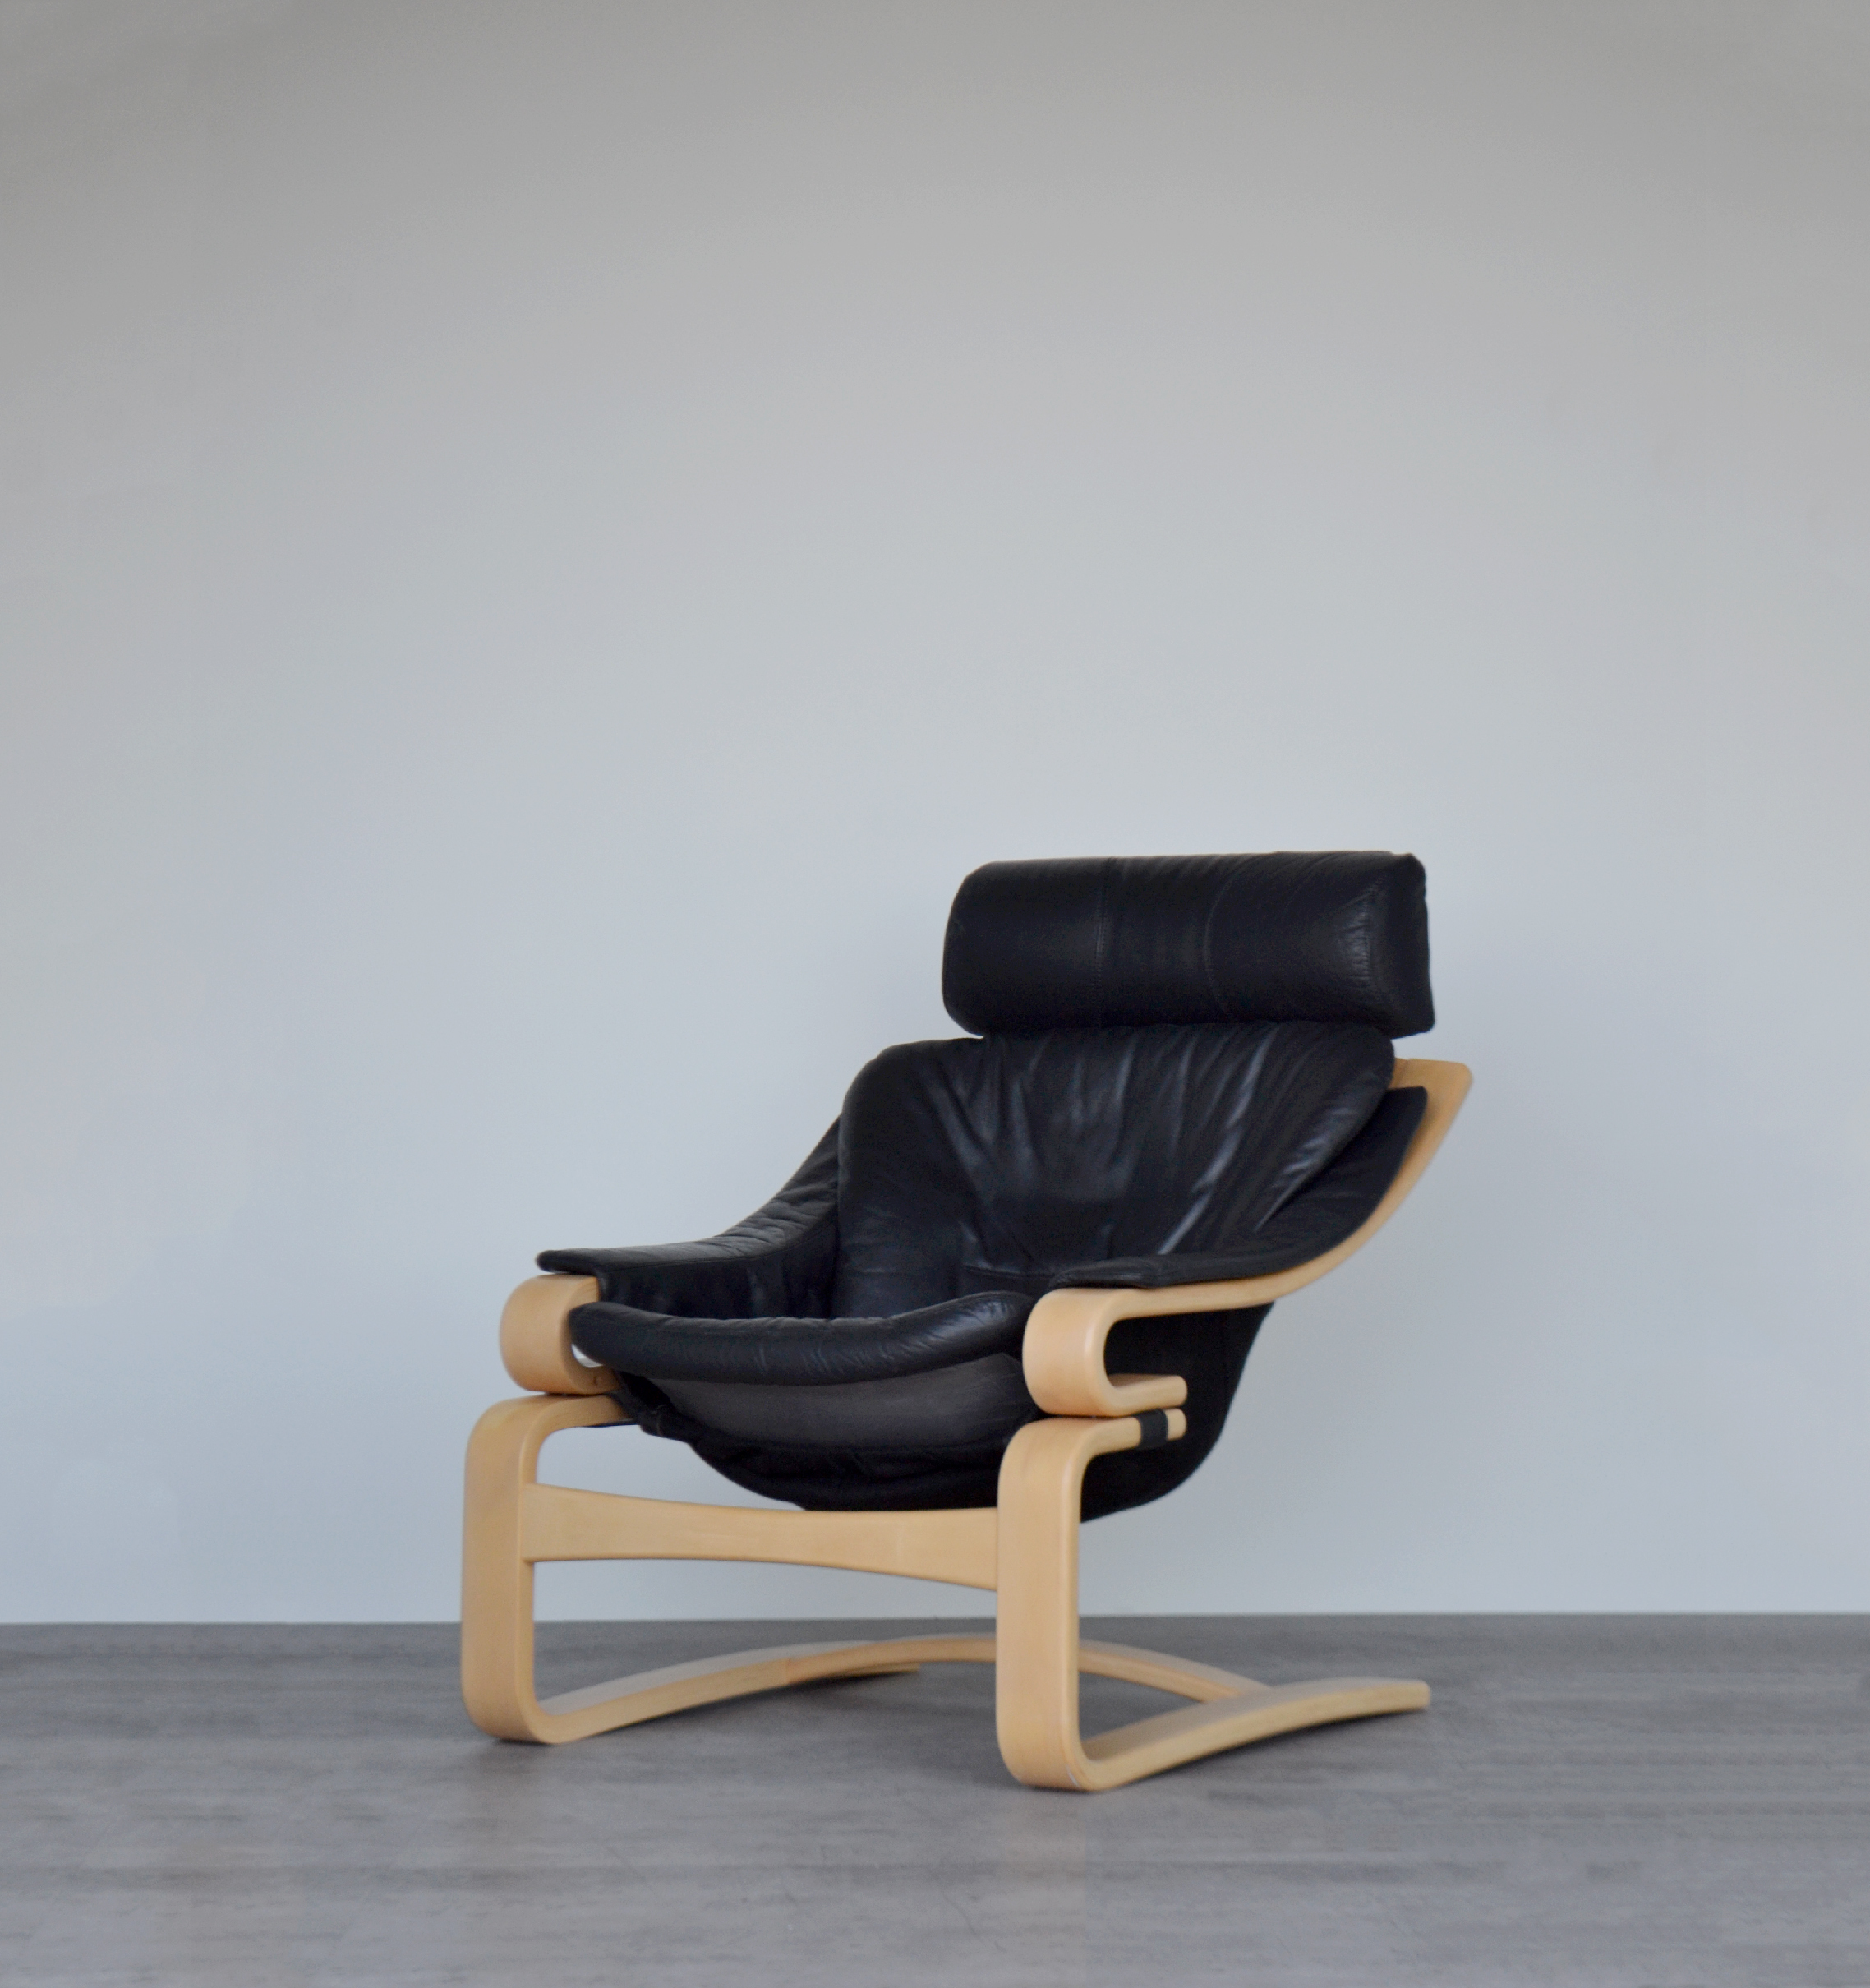 Rare Vintage Mid Century Danish Bentwood Black Leather And Beech Apollo Chair Armchair Lounge Chair By Svend Skipper For Skippers Mobler